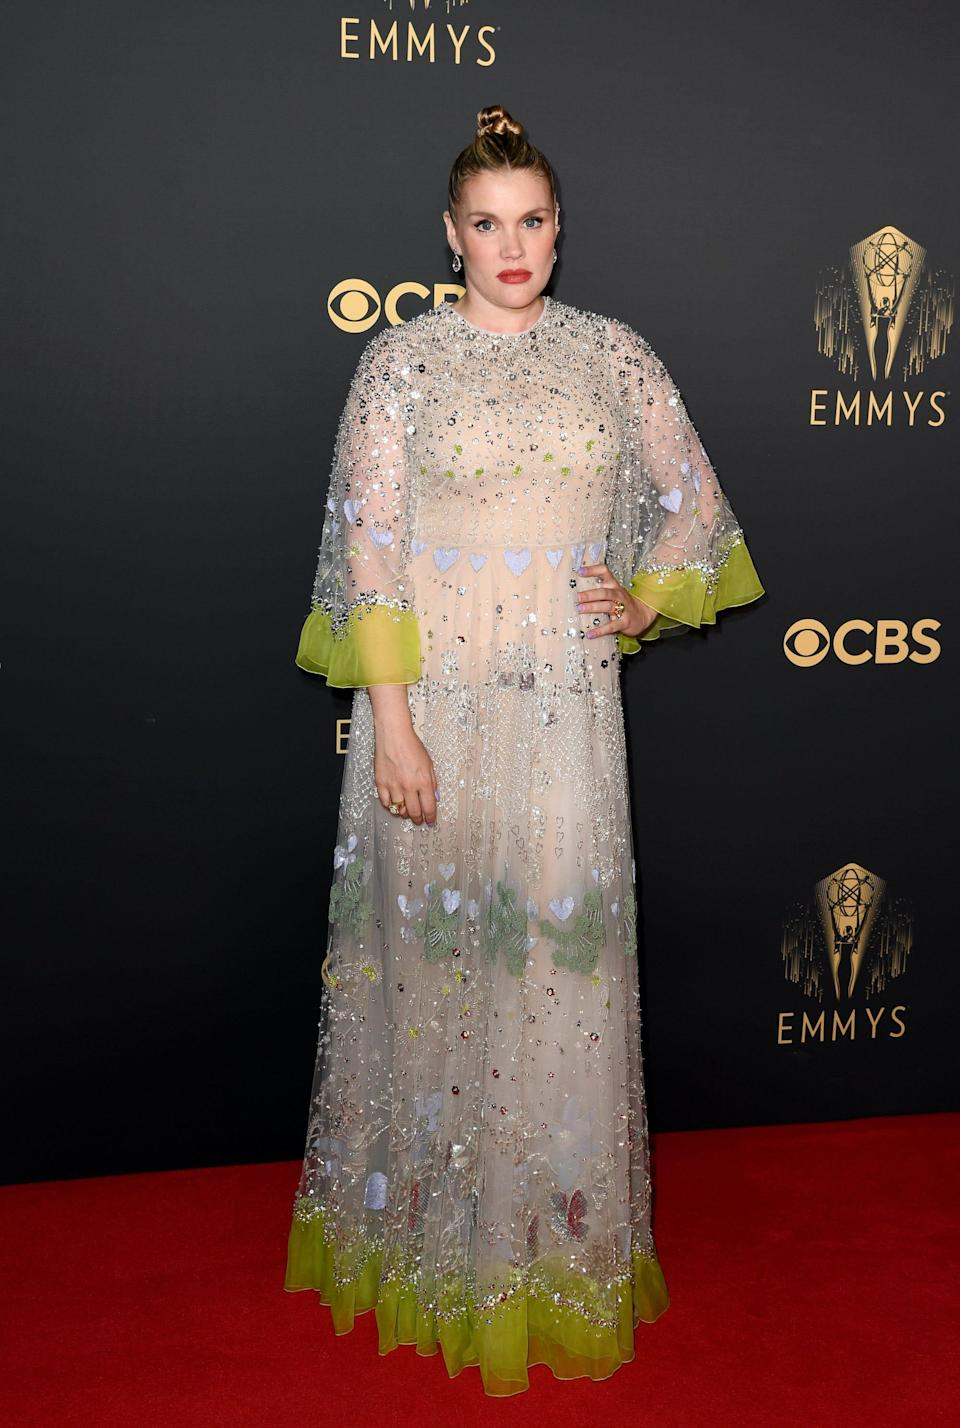 Emerald Fennell wears a sparkly, cream dress on the Emmys red carpet.